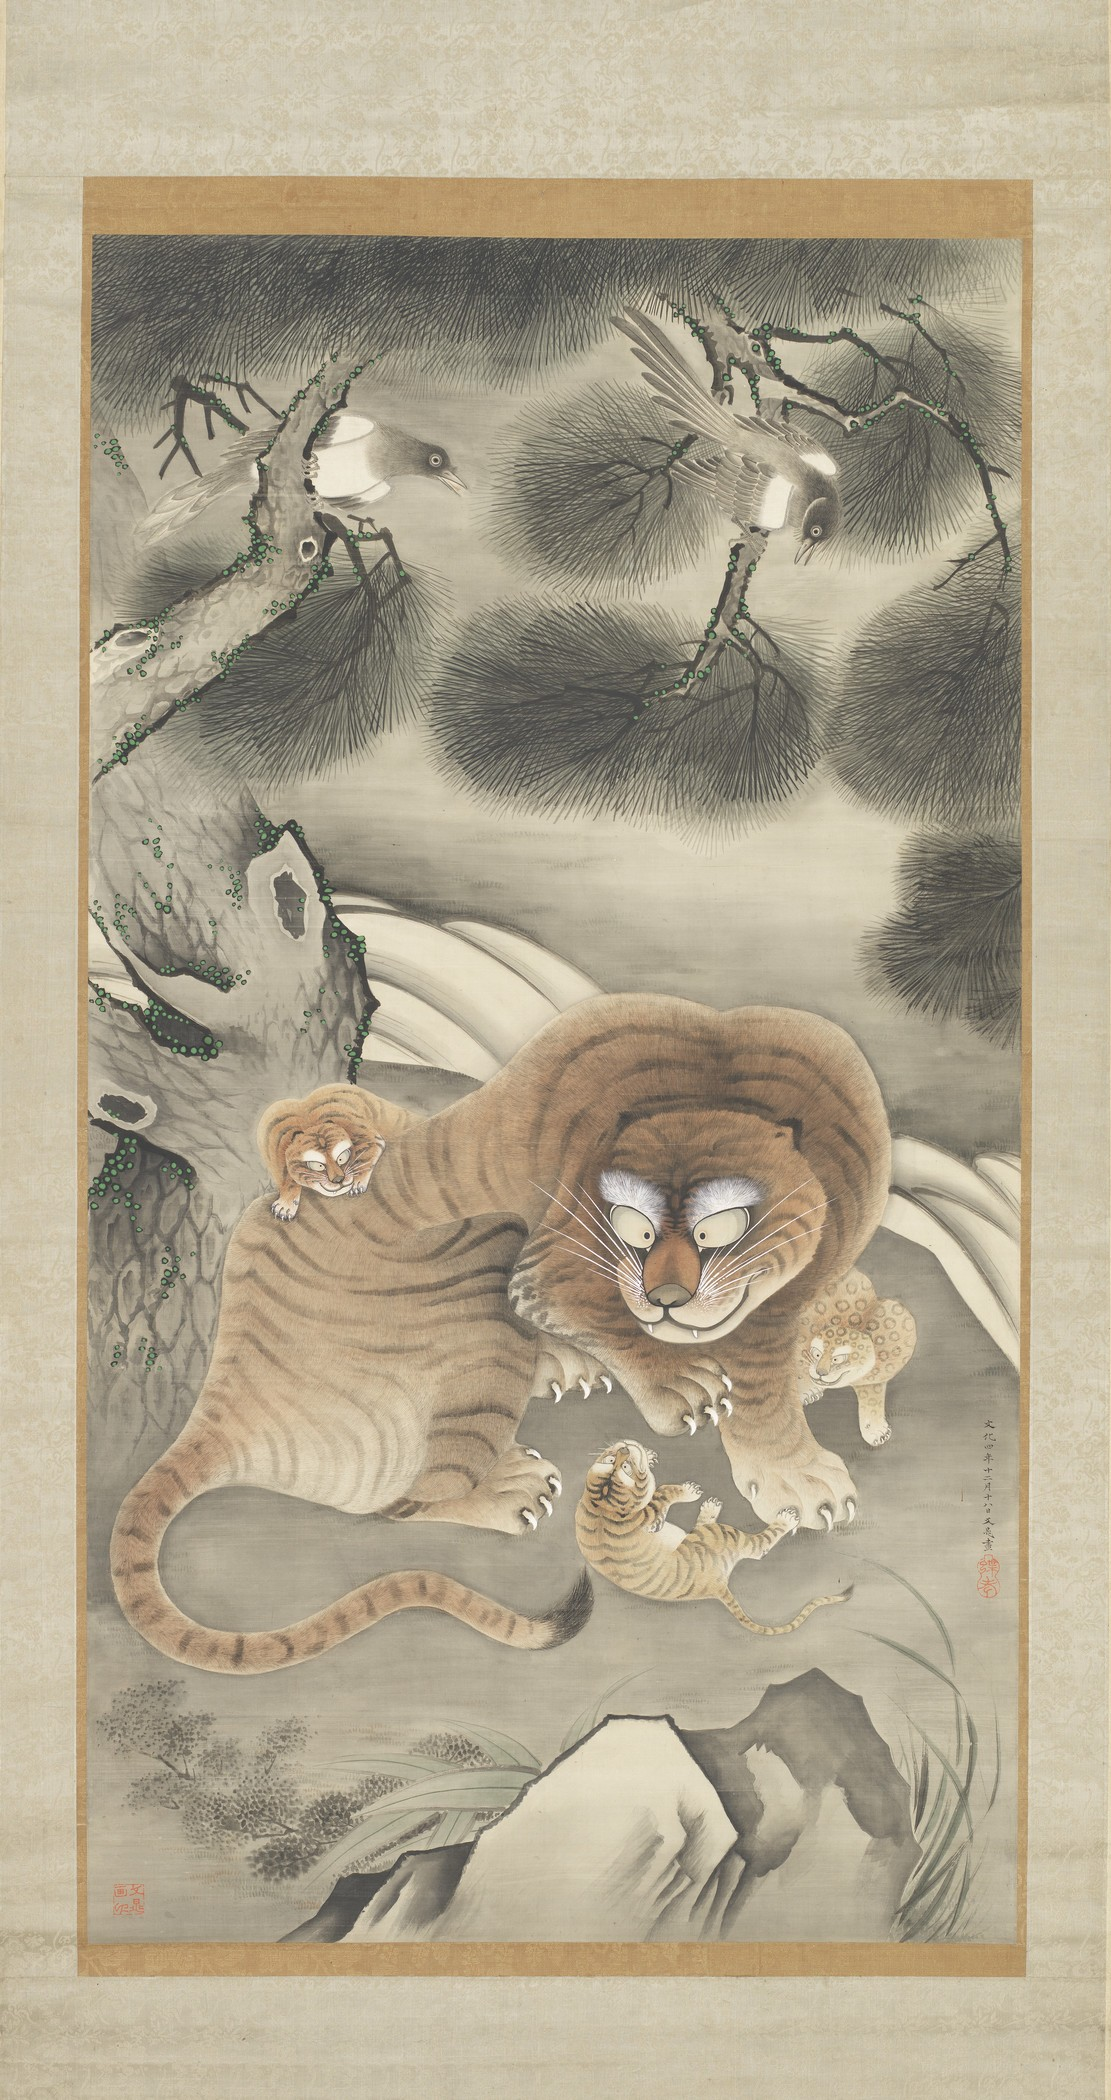 Image: Tani Bunchō, Japan, 1763-1840, Tiger Family and Magpies, 1807 (Bunka 4, 12th month, 18th day)